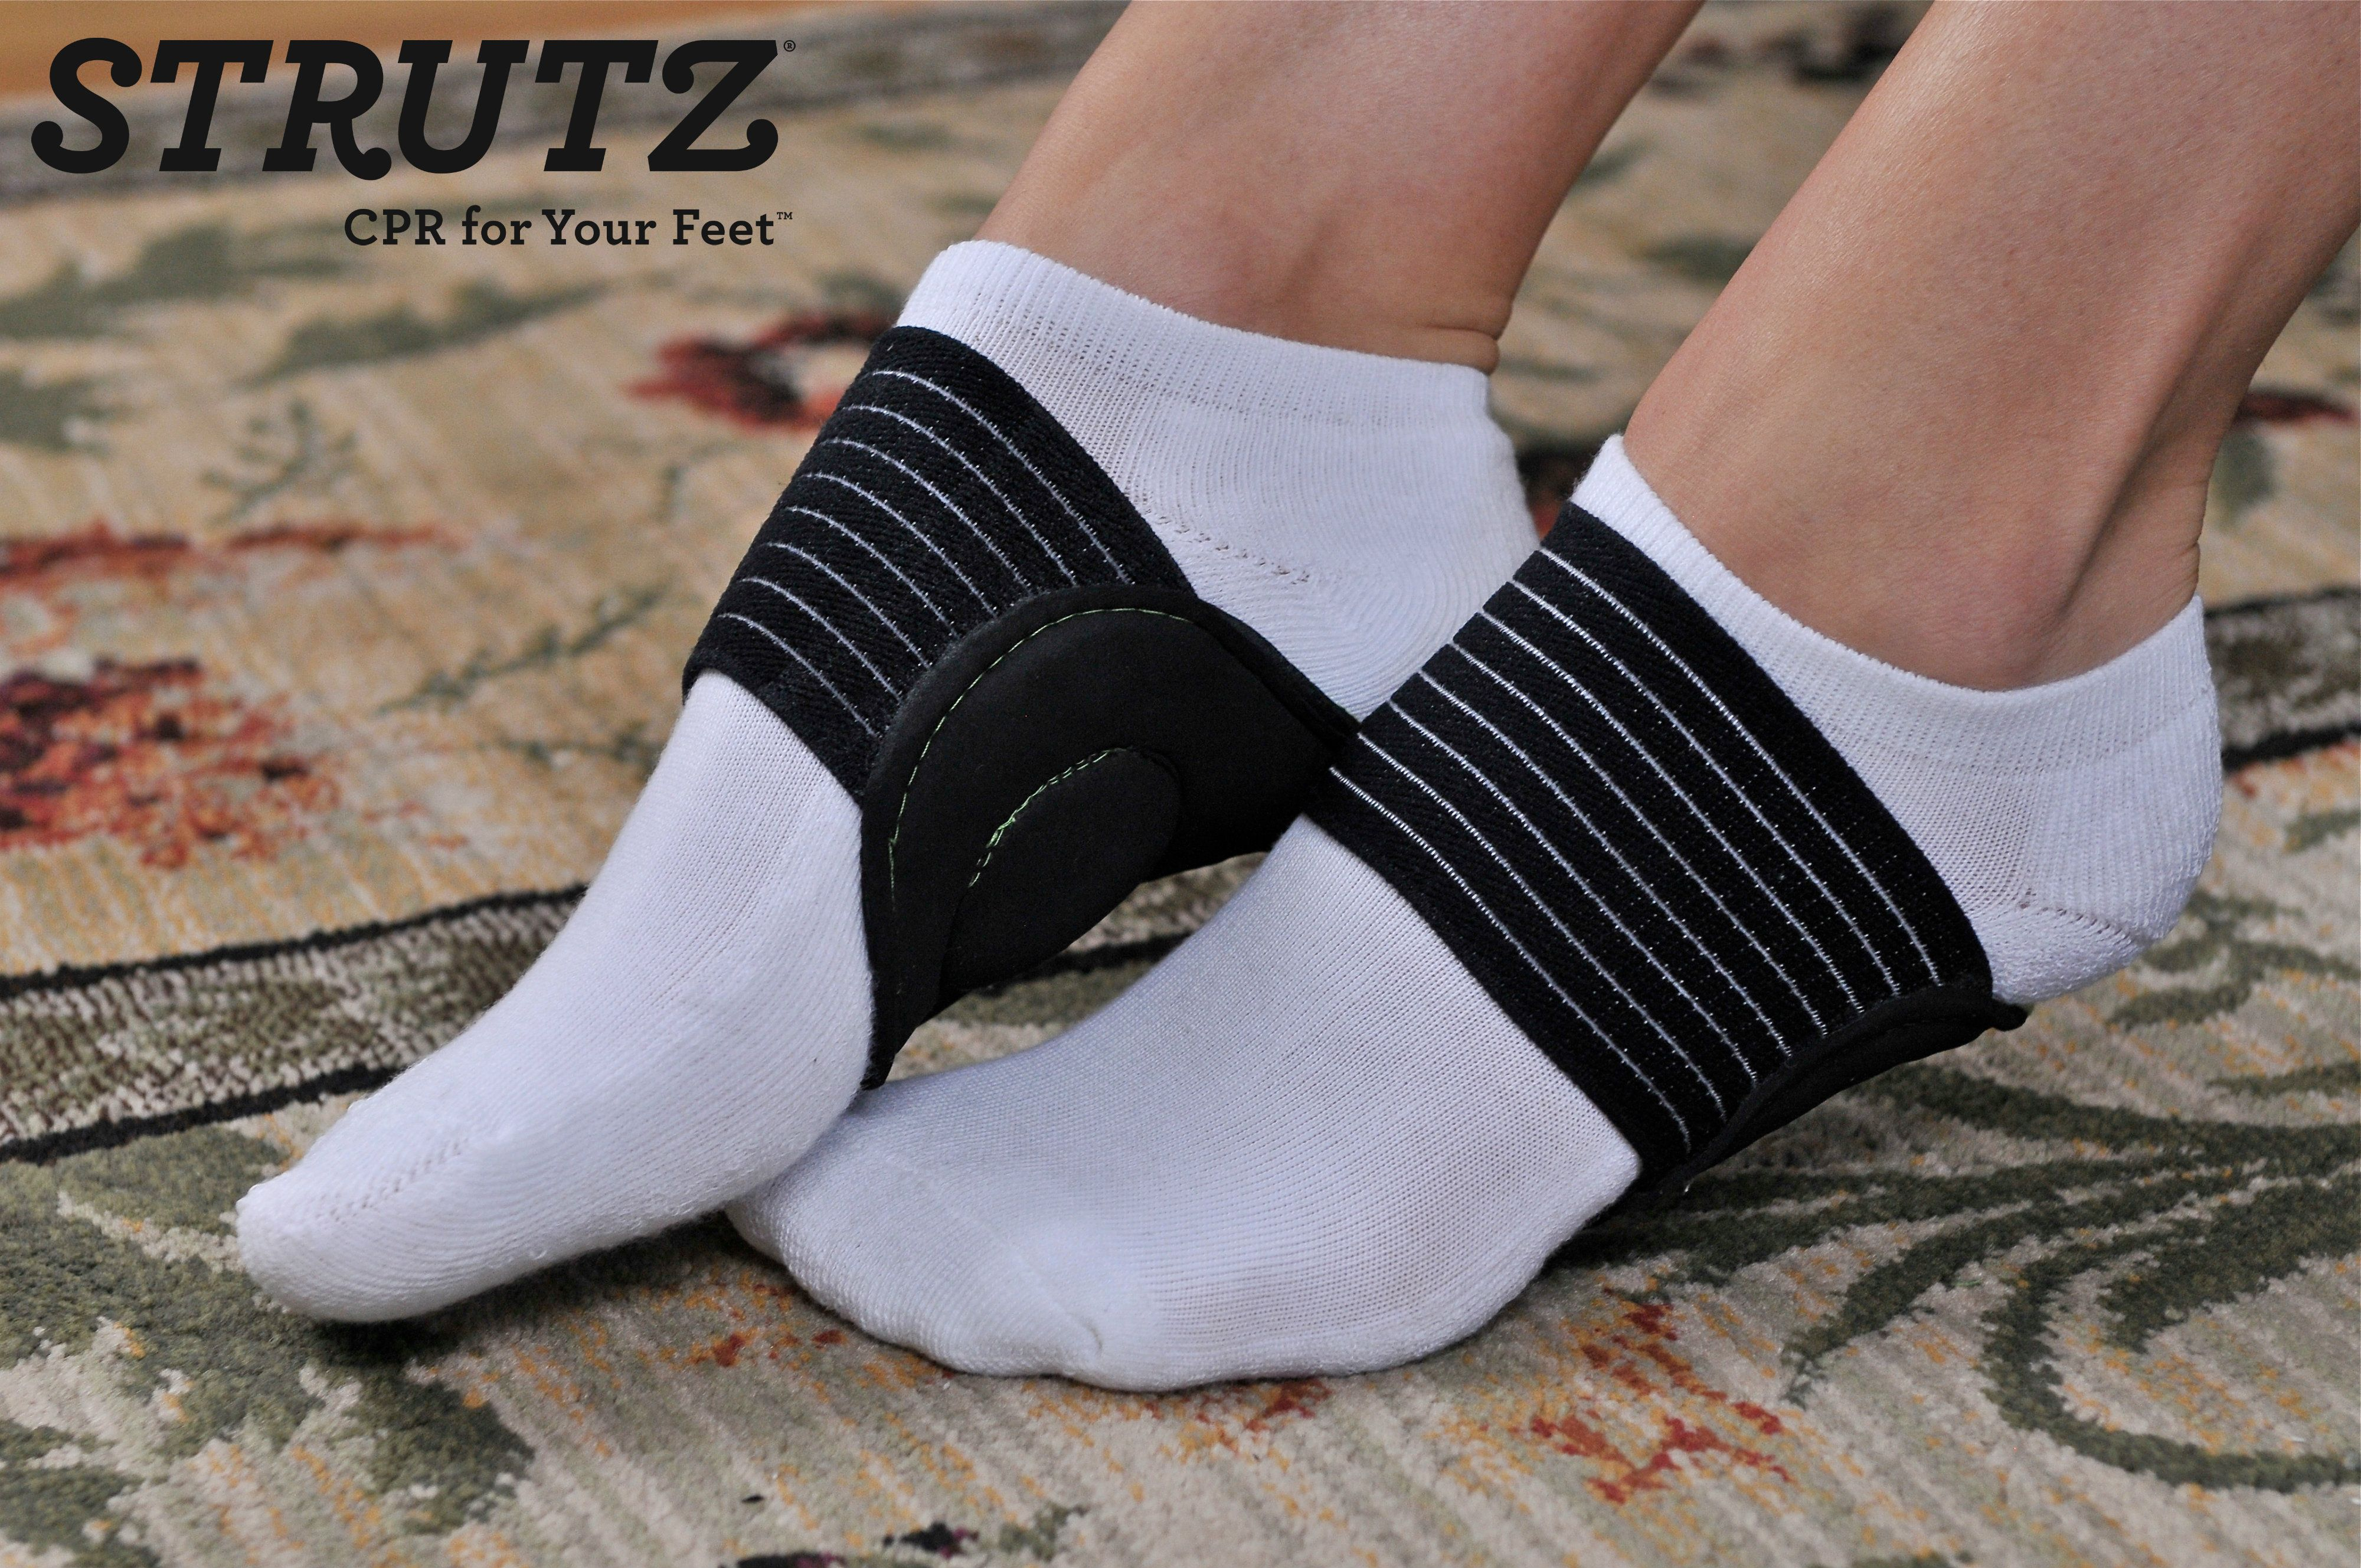 Strutz Arch Supports Cpr For Your Feet Compression Performance